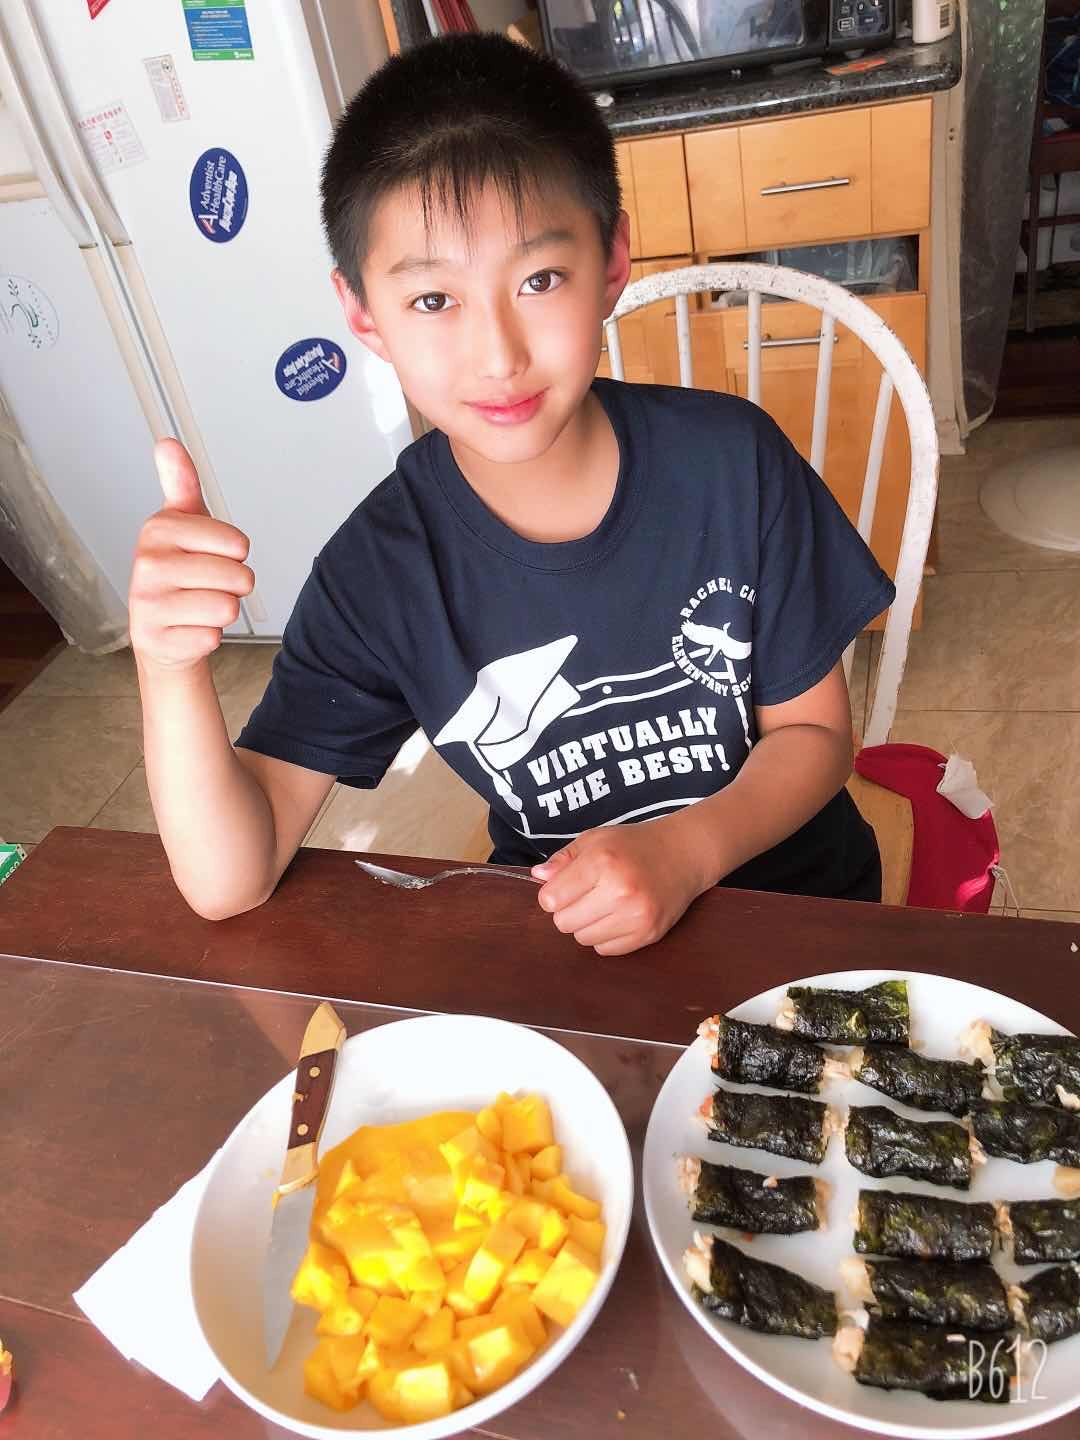 A young boy sitting at a table with a plate of food  Description automatically generated